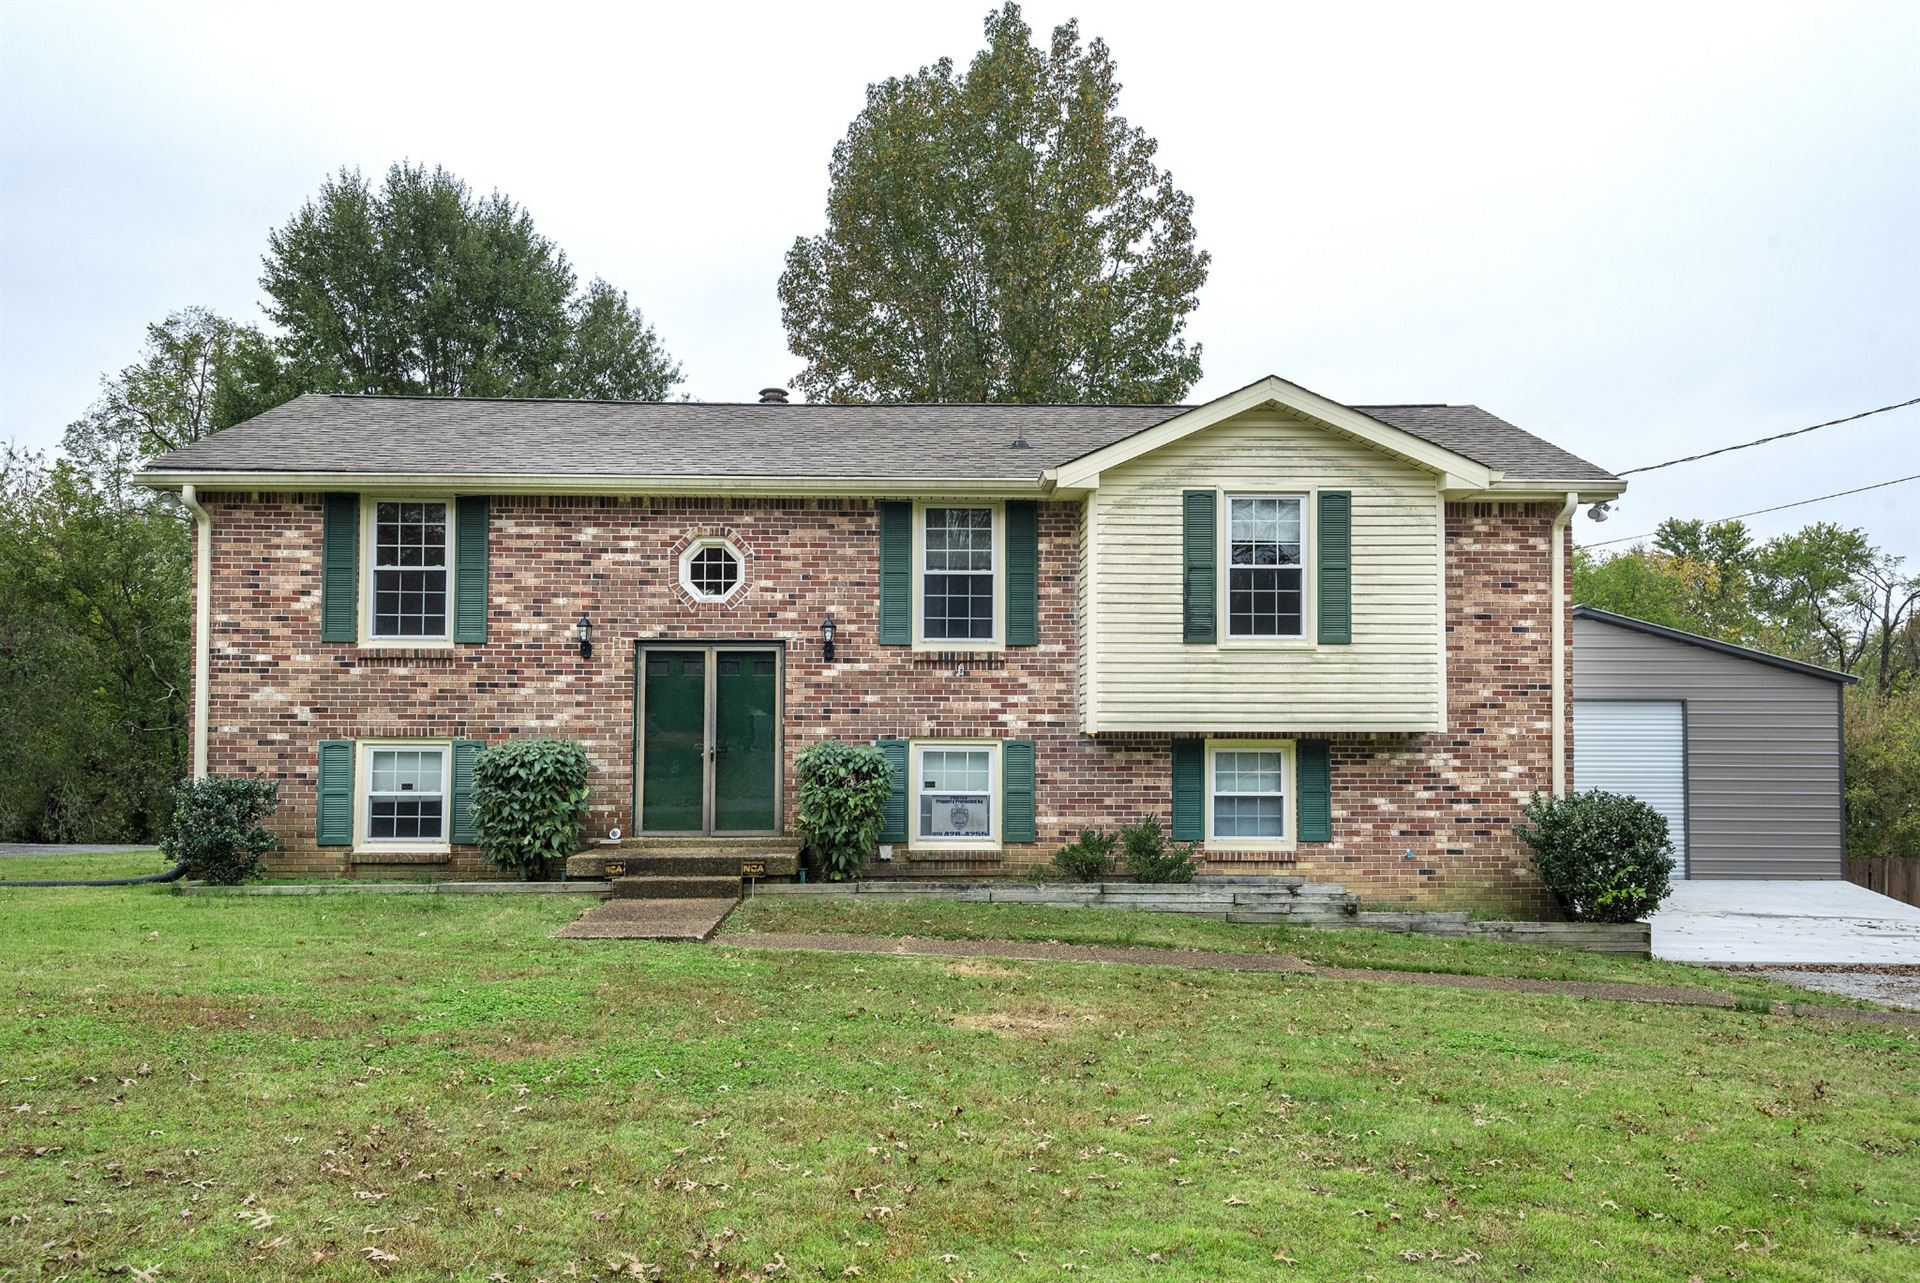 847 Forrest Glen Dr, Old Hickory, TN 37138 - MLS#: 2202334